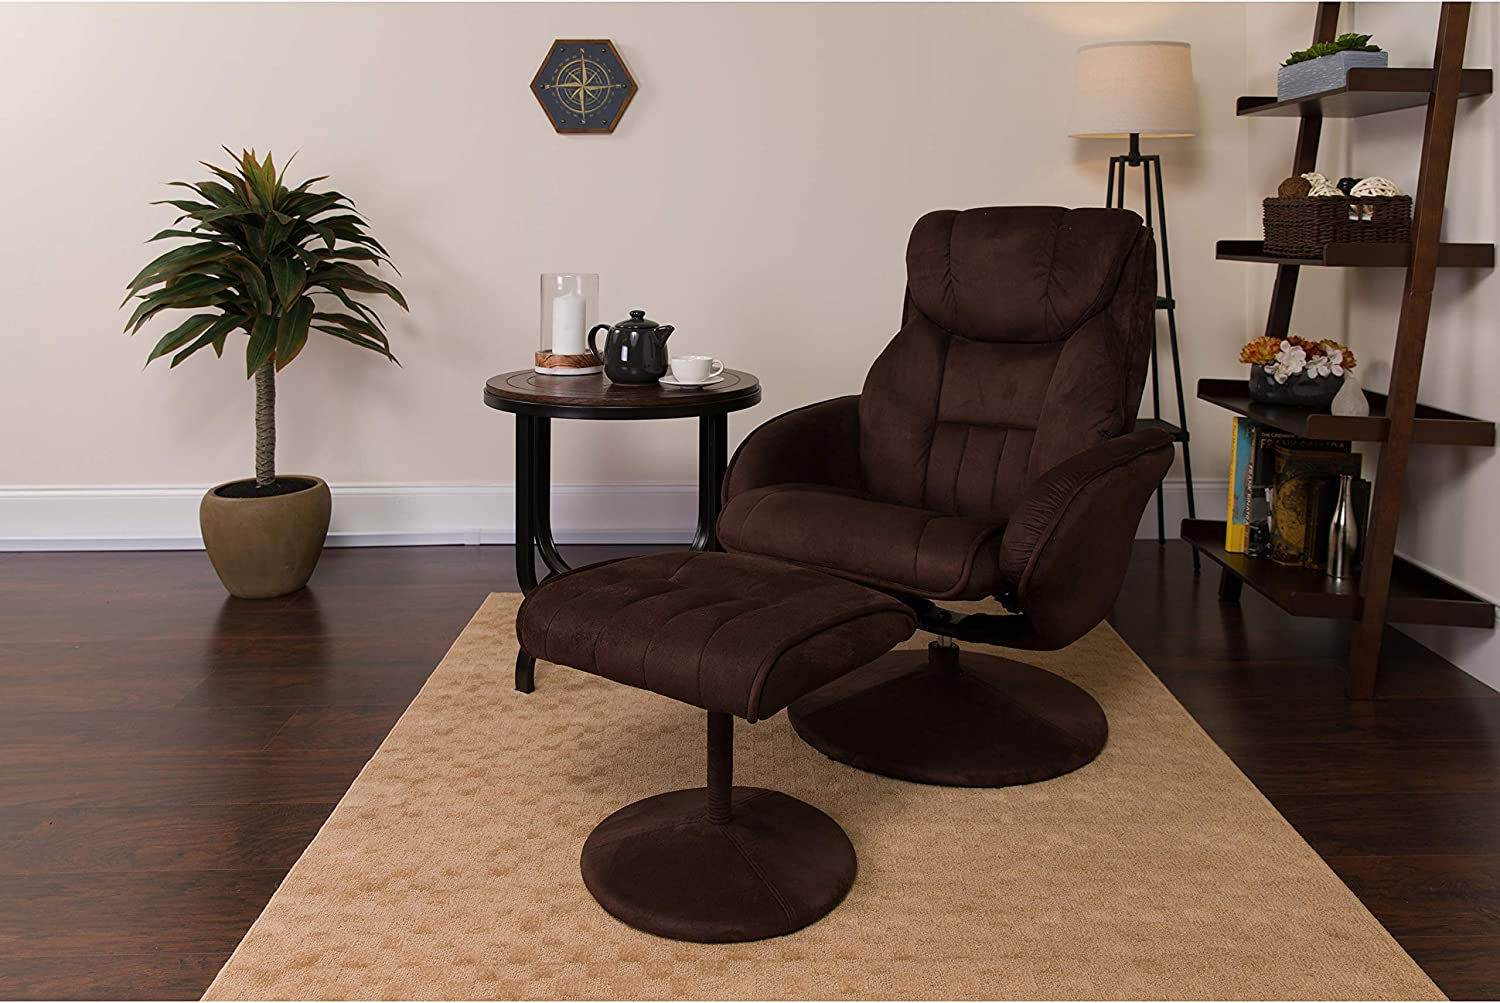 Flash Furniture Contemporary Multi-Position Recliner and Ottoman with Circular Wrapped Base in Brown Microfiber